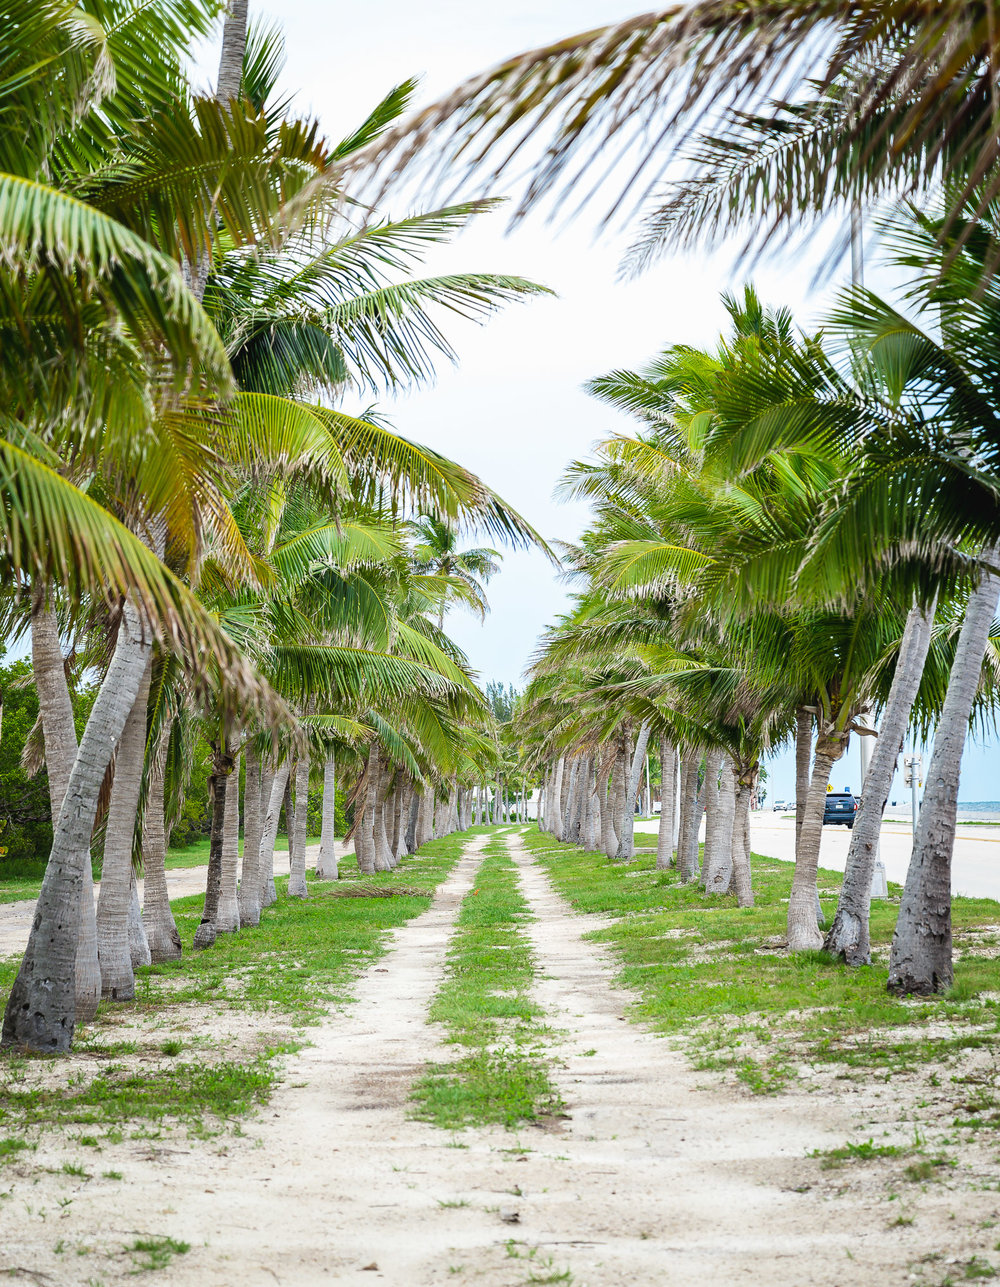 24 north hotel key west bike path smathers beach